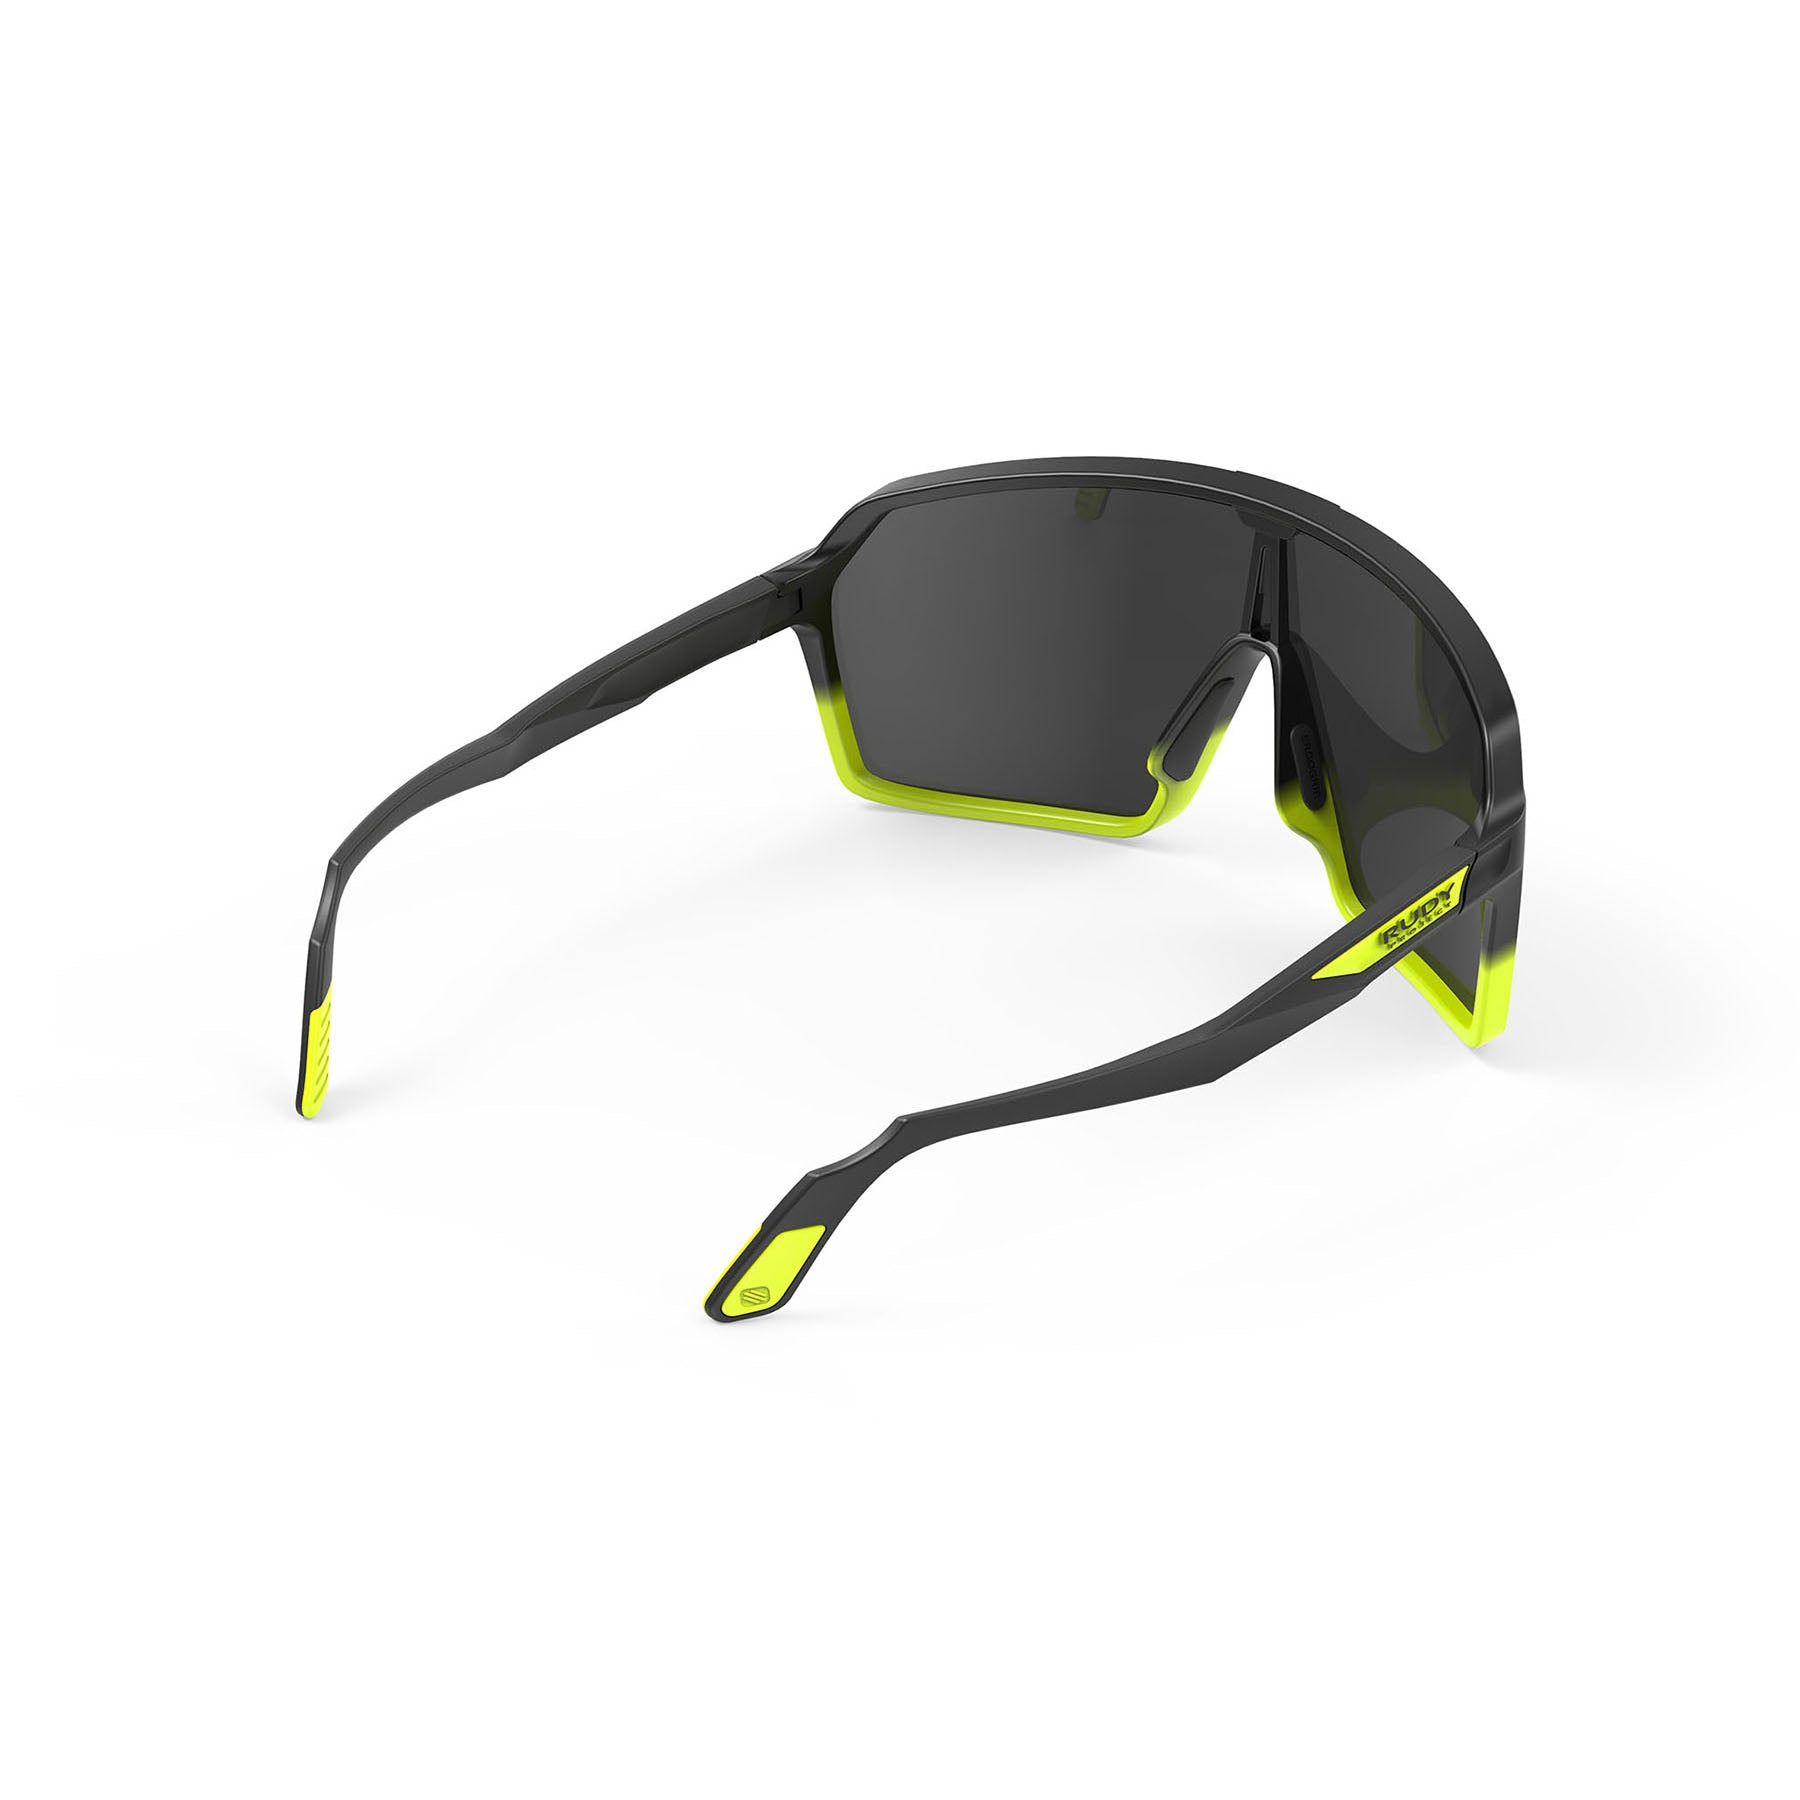 Rudy Project - Spinshield - frame color: Matte Black Yellow Fluo - lens color: Smoke Black - photo angle: Top Back Angle Variant Hover Image